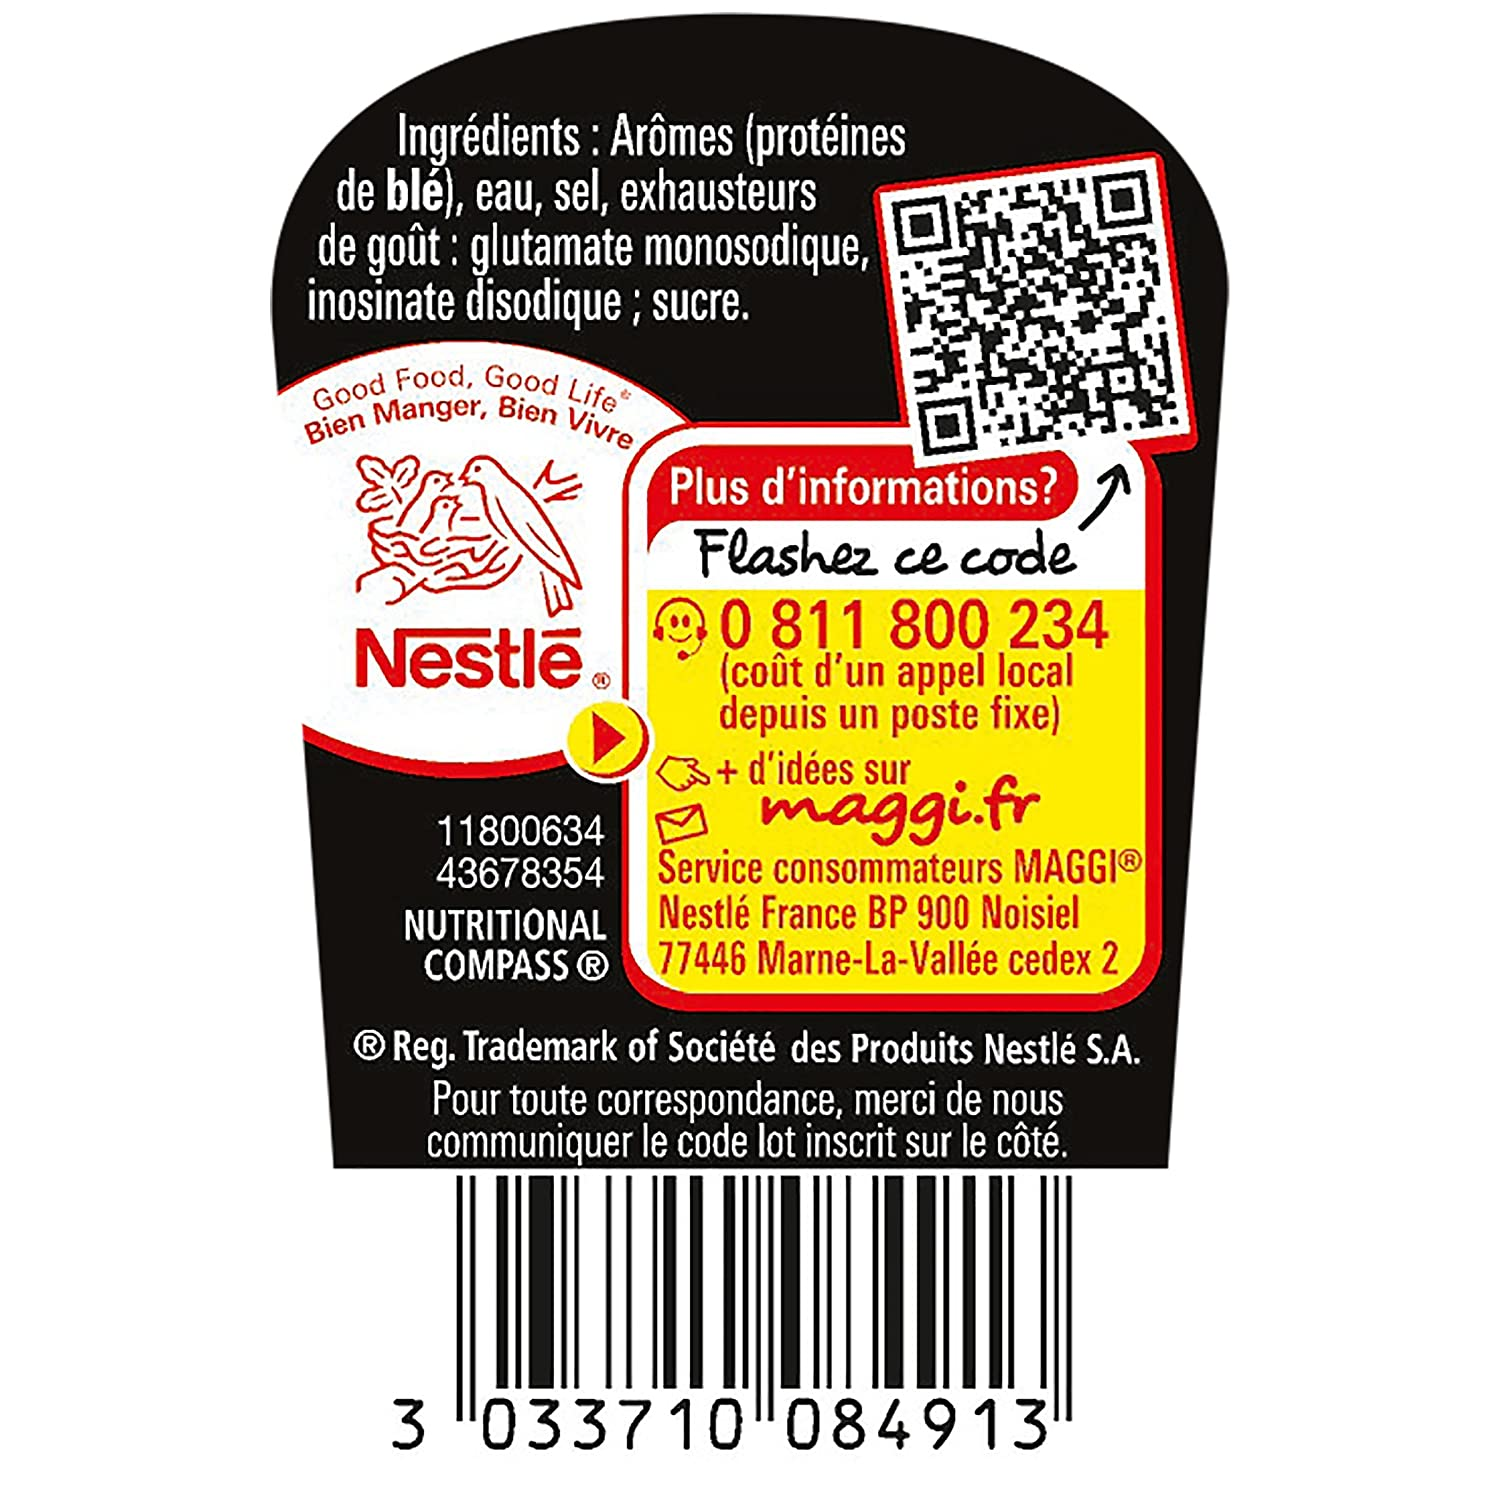 Amazon Maggi Arome Saveur Depuis 1889 Imported From France